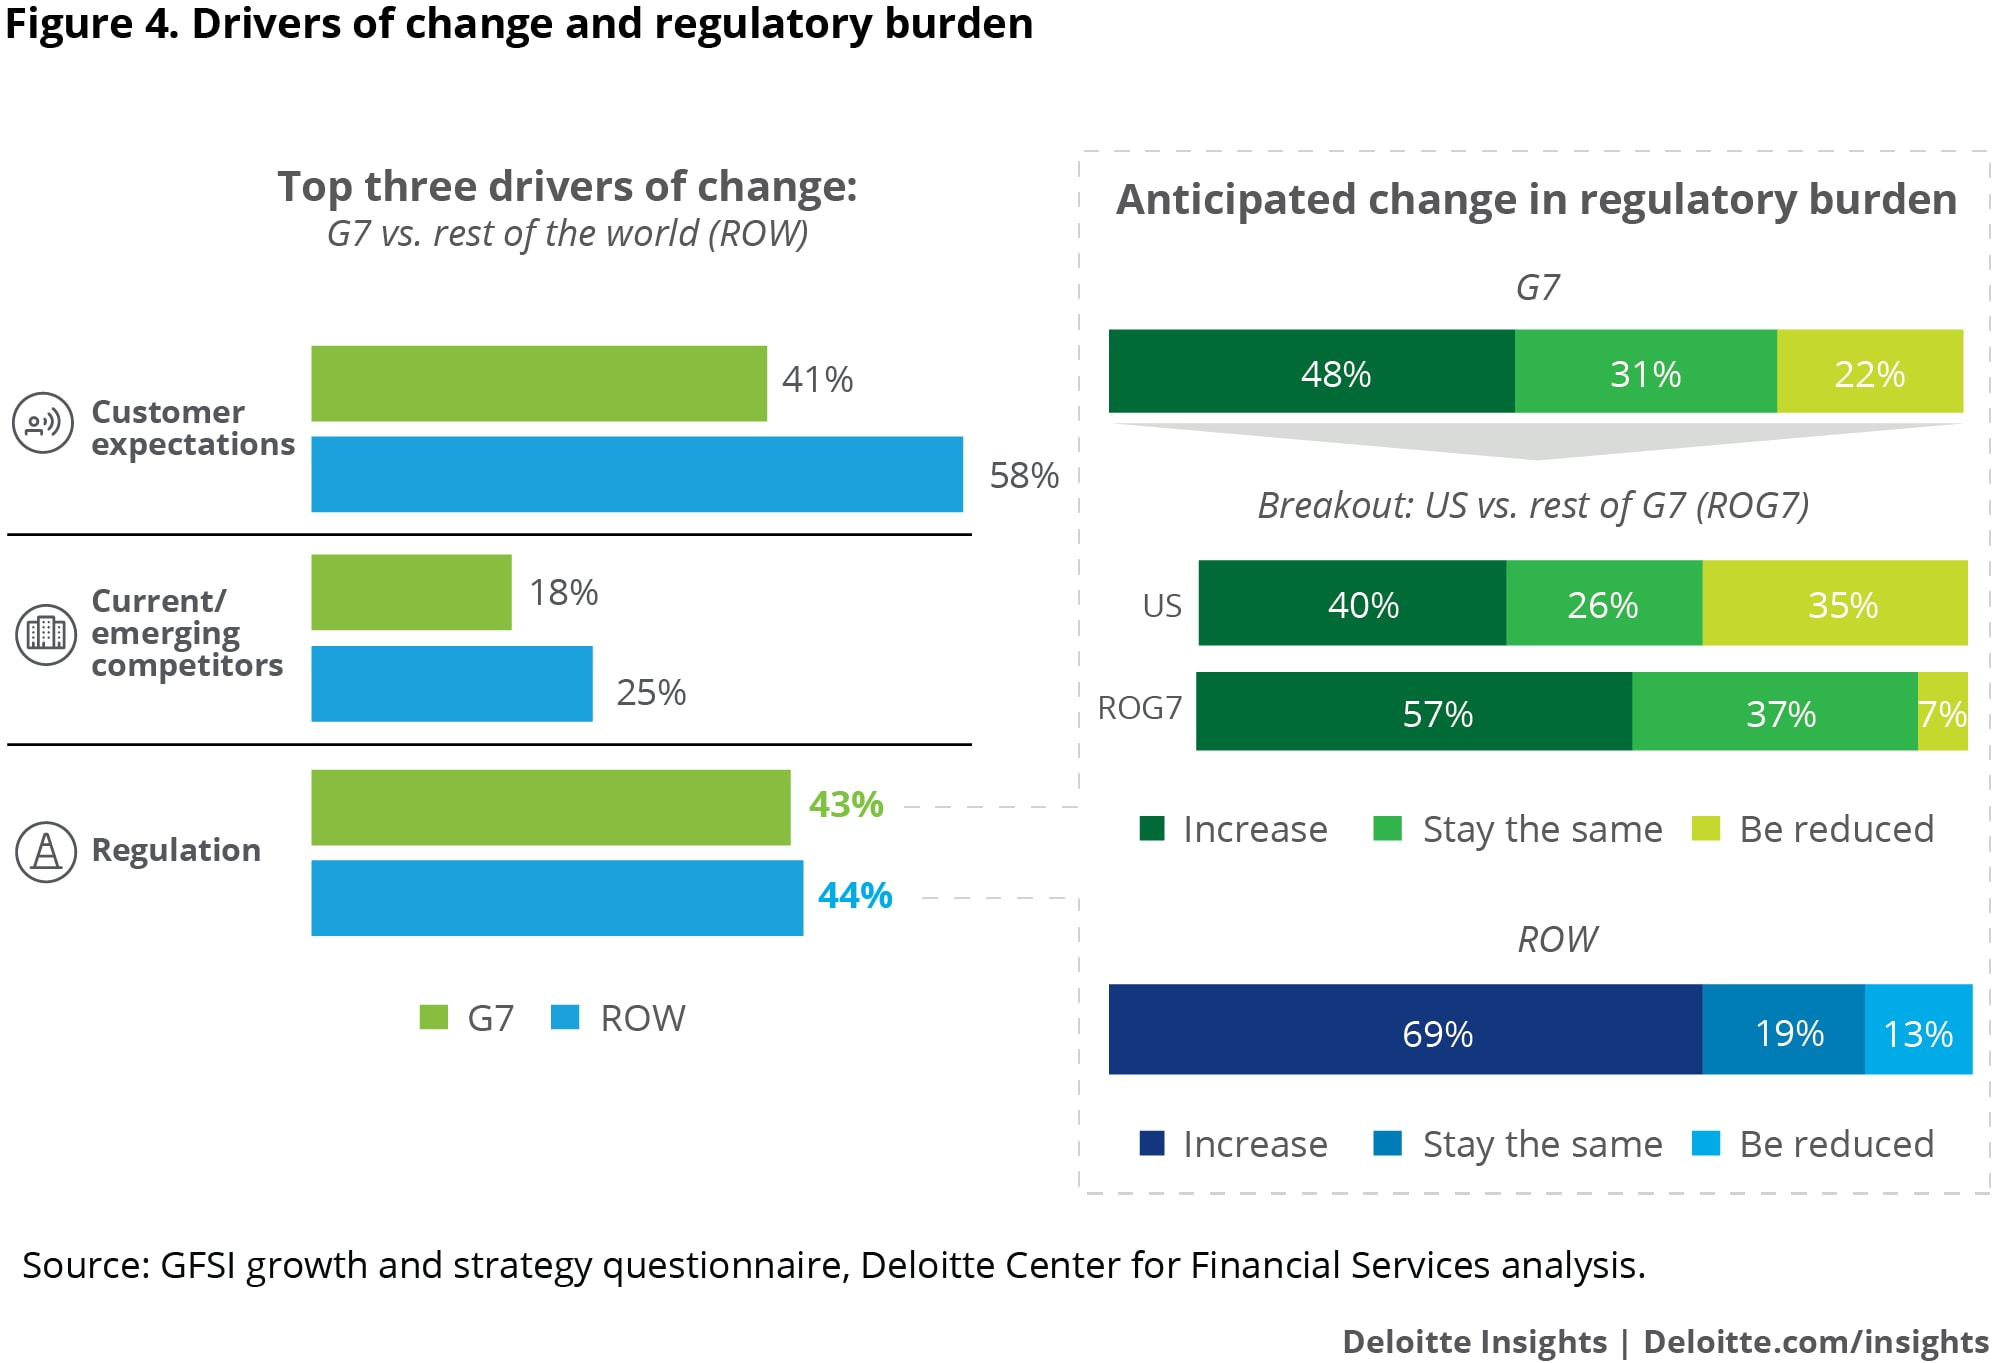 Regulatory influence as a driver of change, but not current and emerging competitors